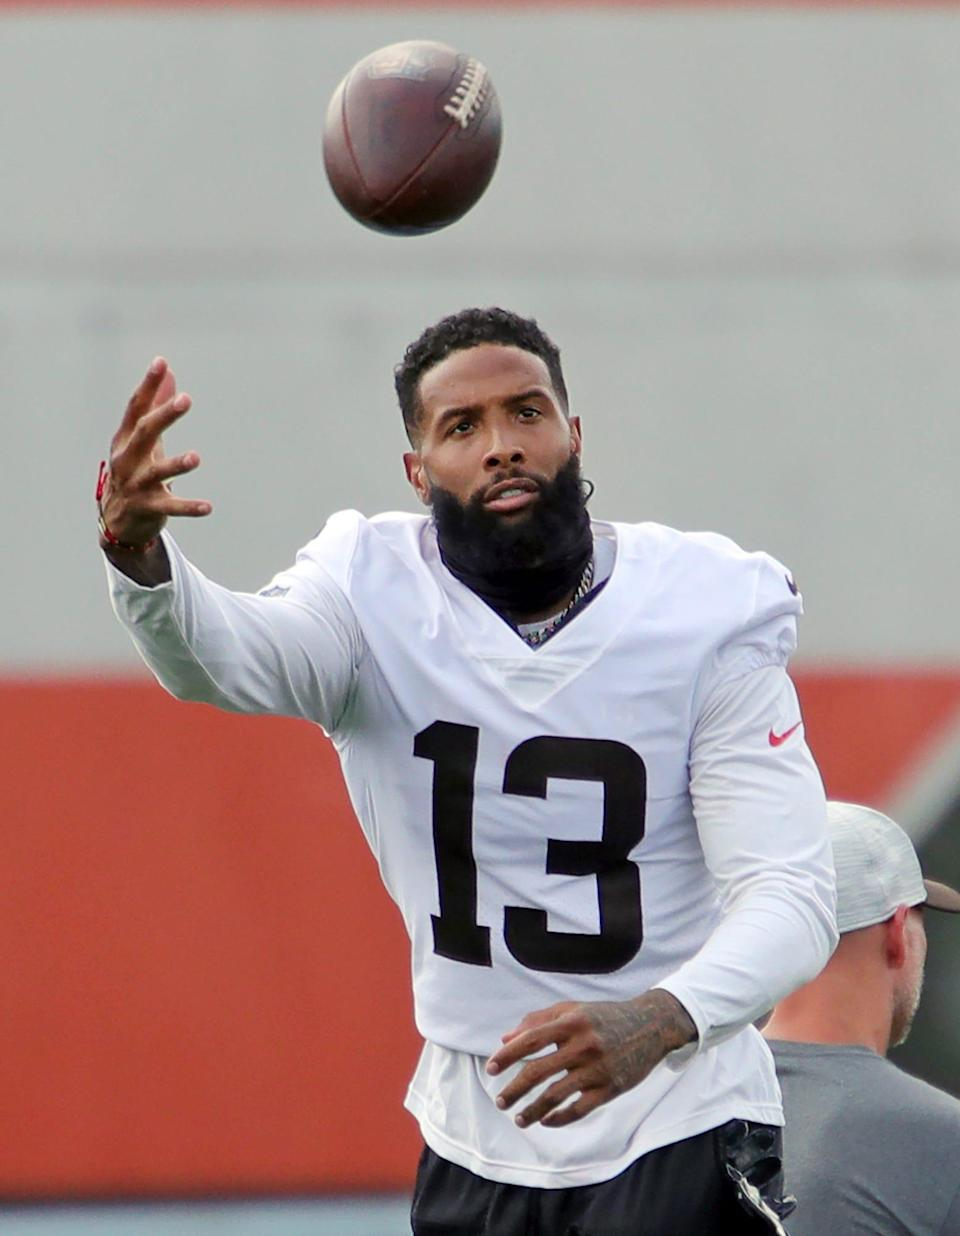 In seven games last season, Odell Beckham Jr. caught 23 passes for 319 yards and three touchdowns and rushed three times for 74 yards and a score.